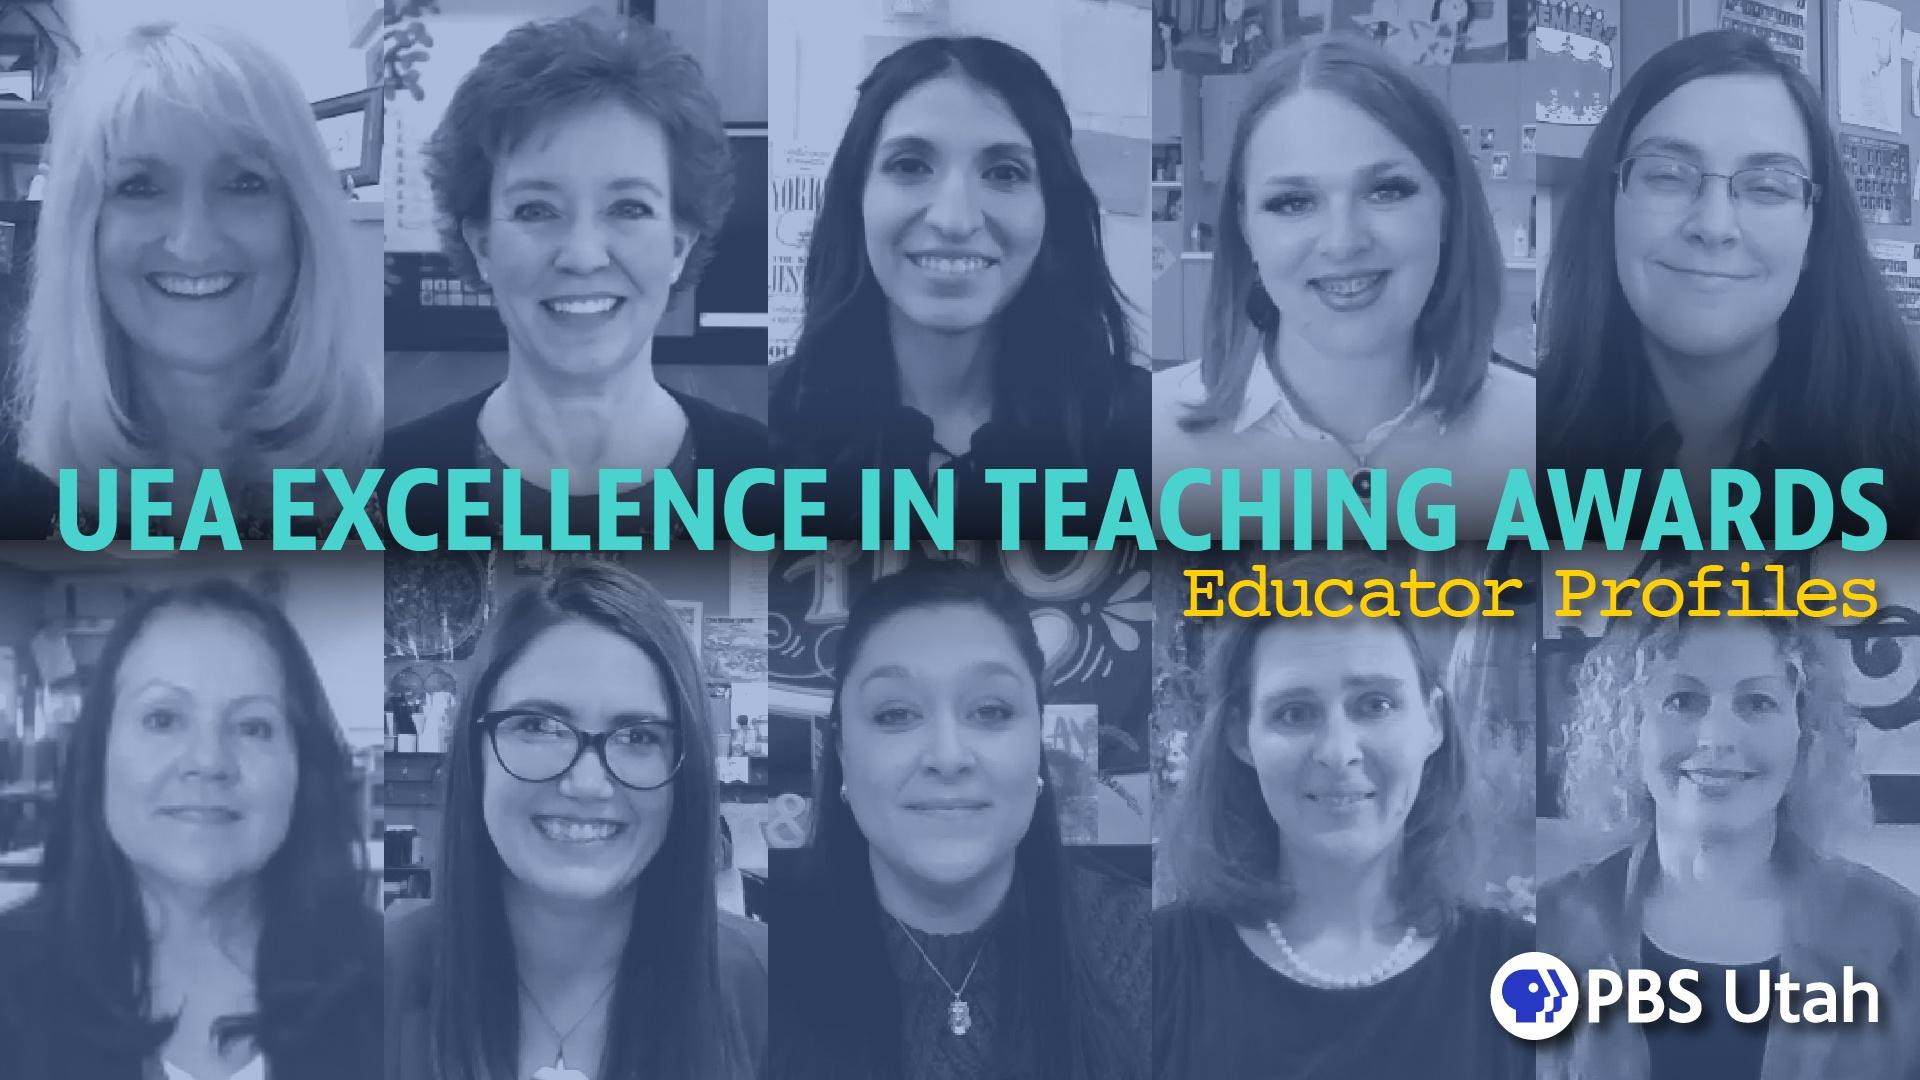 UEA Excellence in Teaching Awards - Educator Profiles 2020